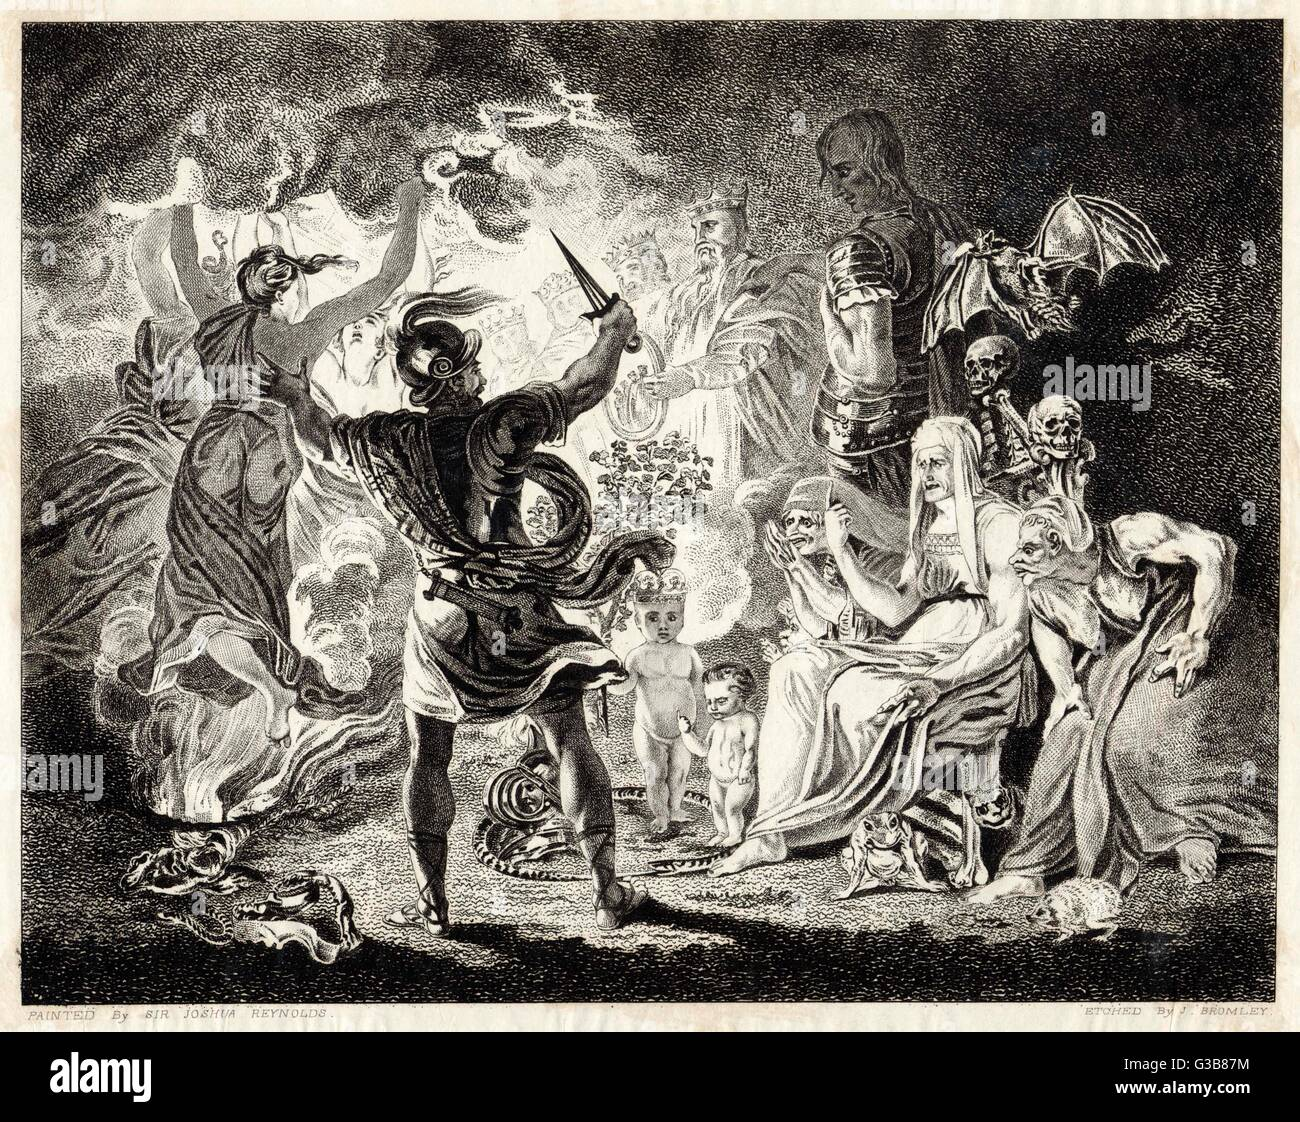 macbeths kingship in act 3 scene William shakespeare's macbeth notes act iii act 3 scene 1 summary macbeth has now taken up residence at forres banquo suspects we learn that macbeth backs security in kingship he is now obsessed by the witches prophecies to banquo.